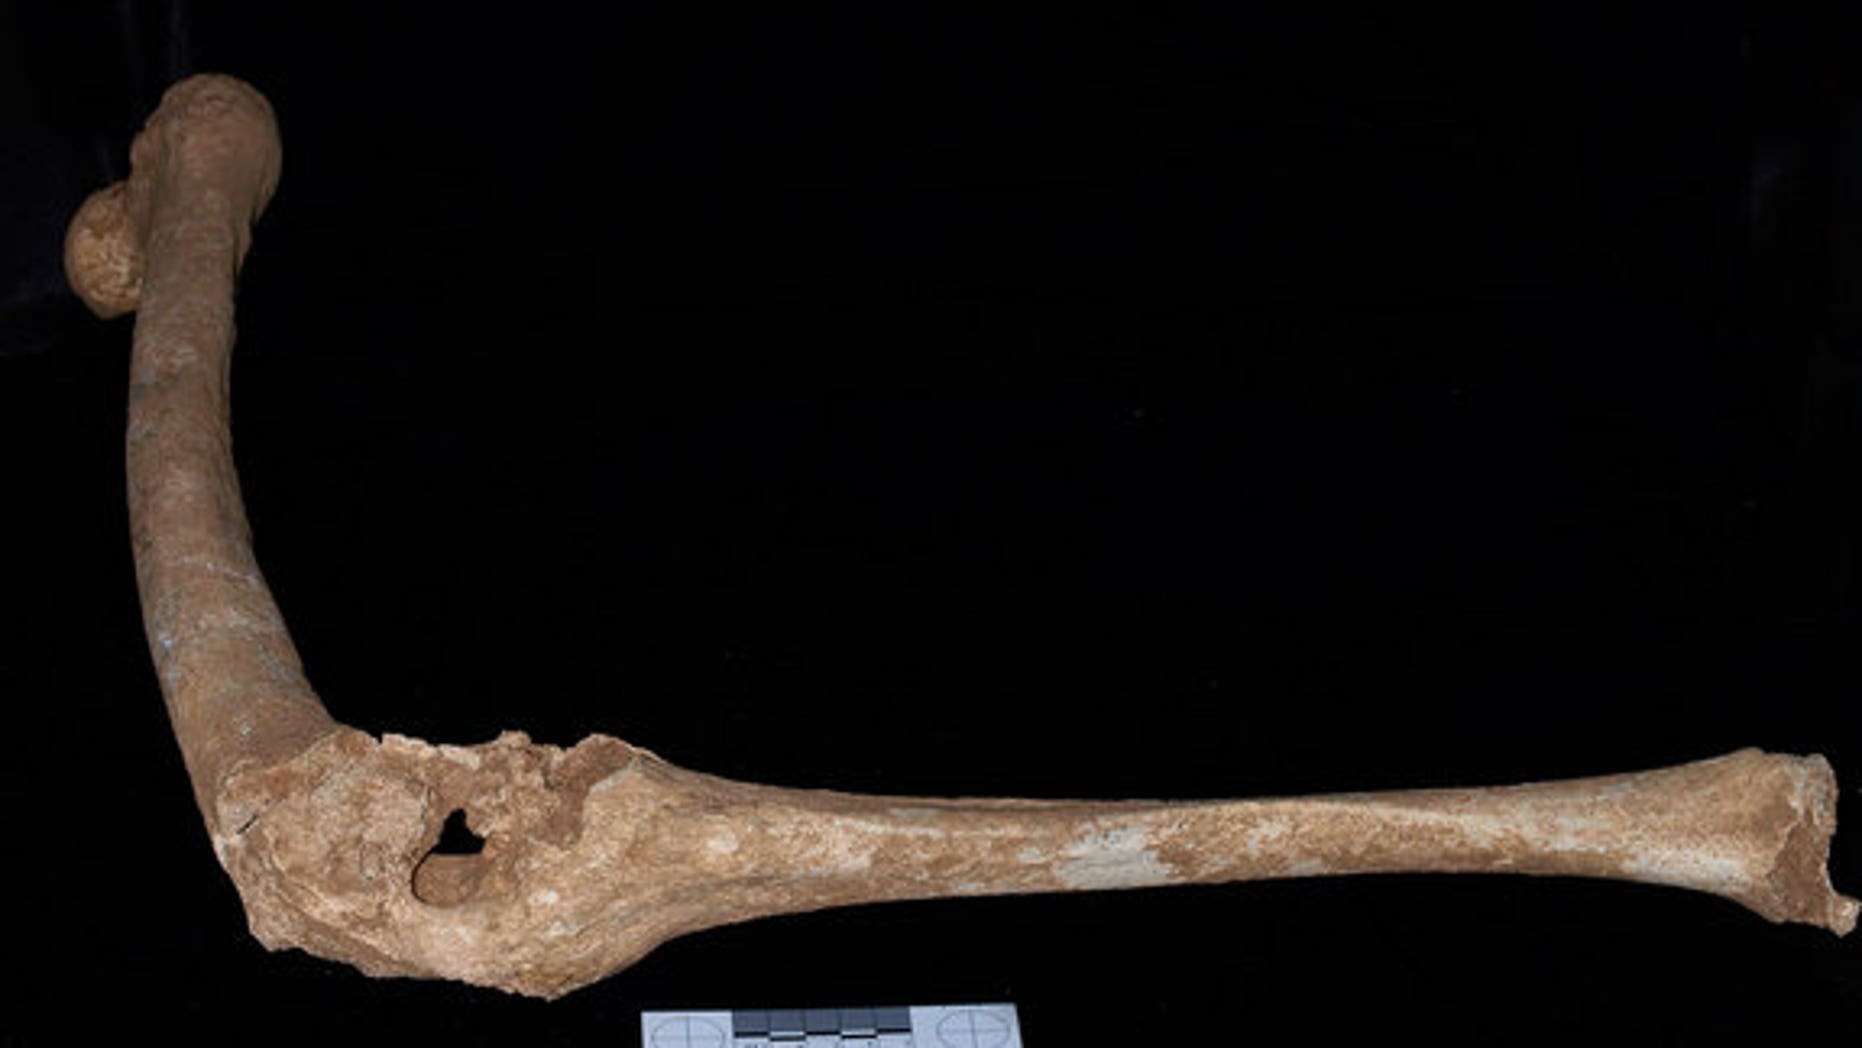 The left leg of an adult male skeleton found in Tomb I at Vergina. The thigh bone (femur) and one of the bones of the lower leg (the tibia) are fused, and hole at the knee suggests a devastating penetrating injury.